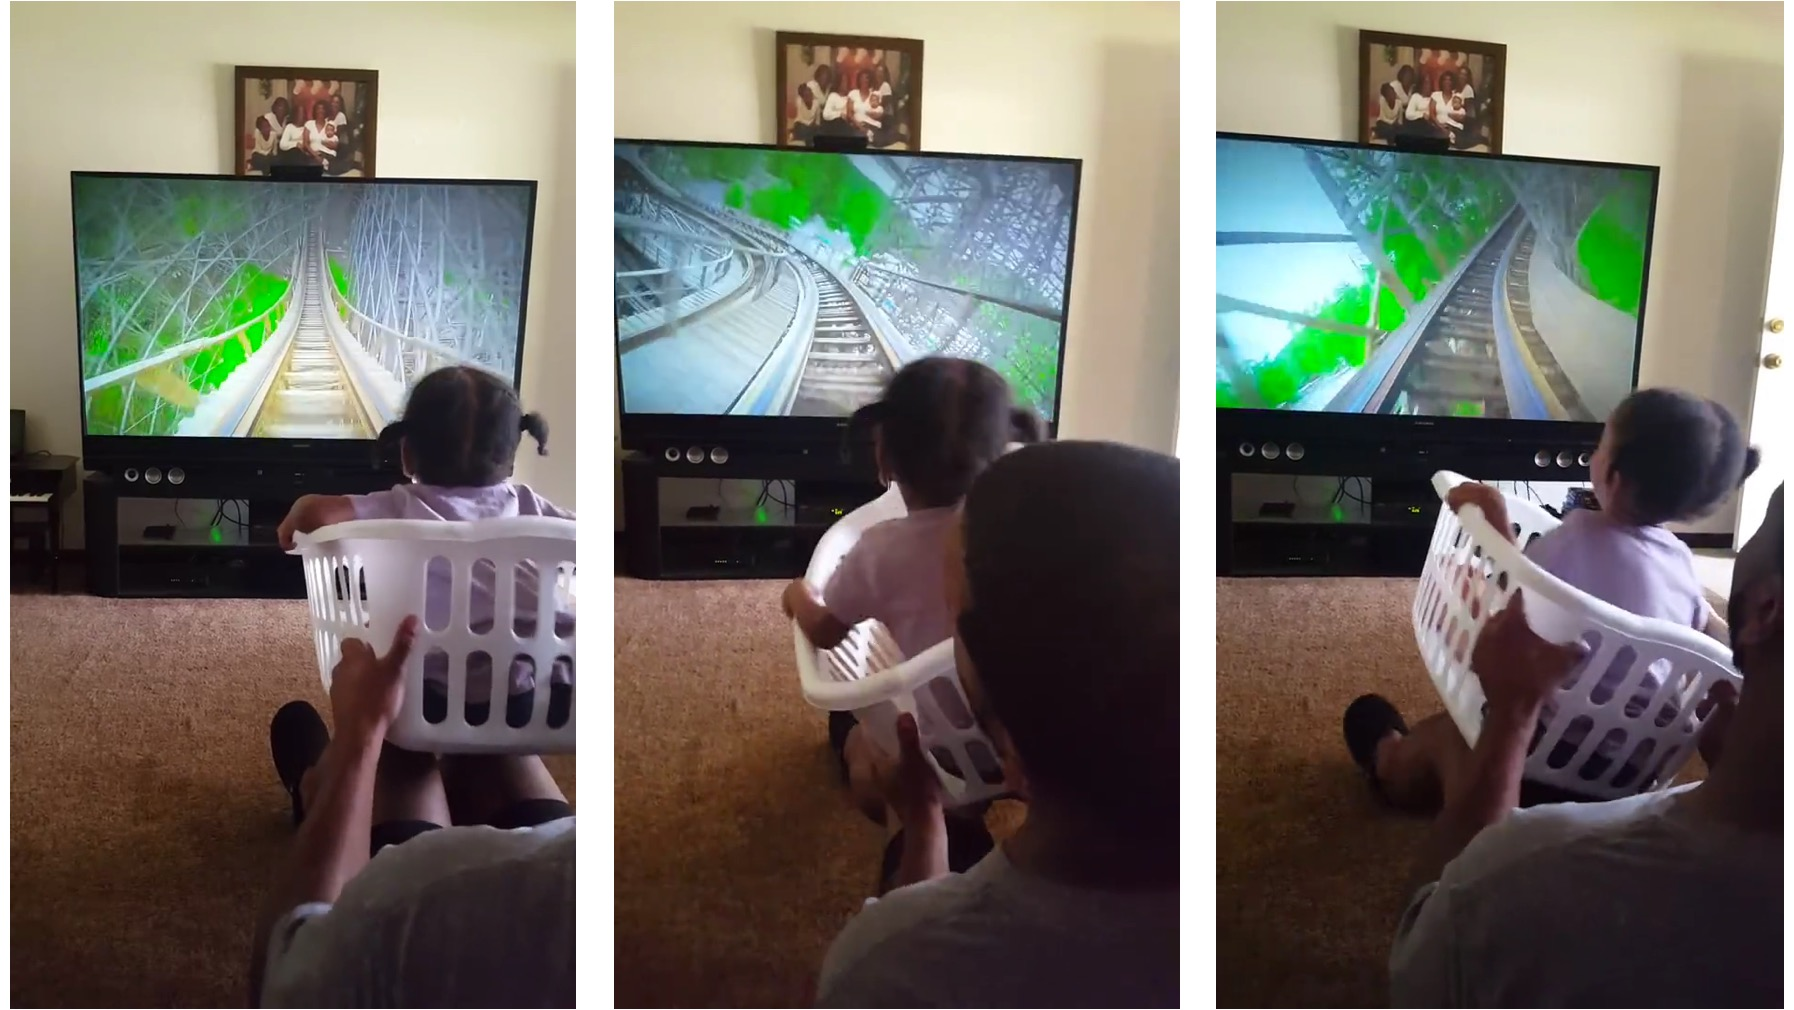 Awesome Dad's Virtual Rollercoaster Results In Adorable Reactions From Daughter